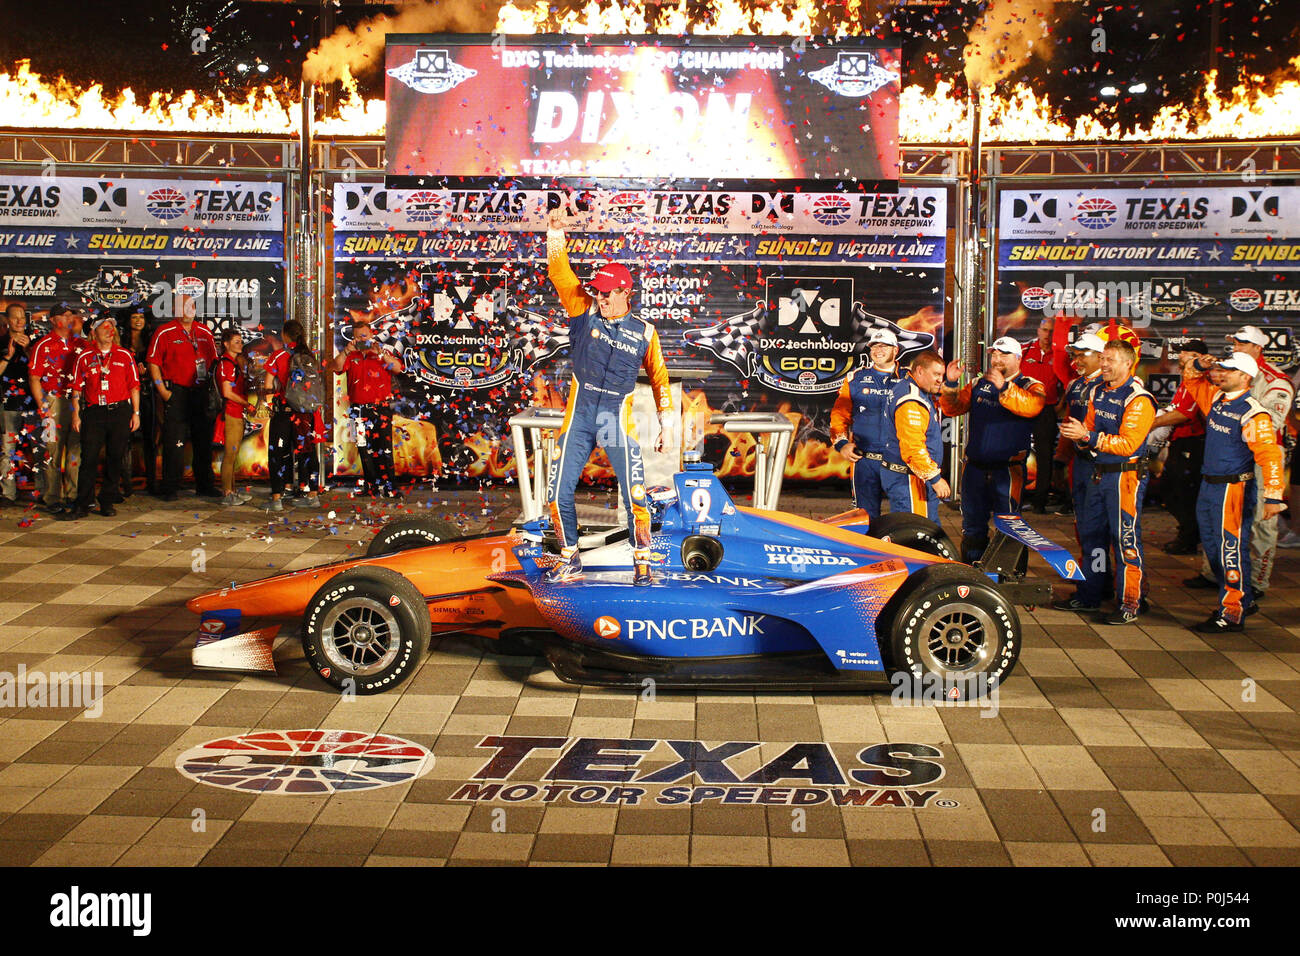 SCOTT DIXON (9) of New Zealand celebrates in victory lane after winning the DXC Technology 600 at Texas Motor Speedway in Fort Worth, Texas.